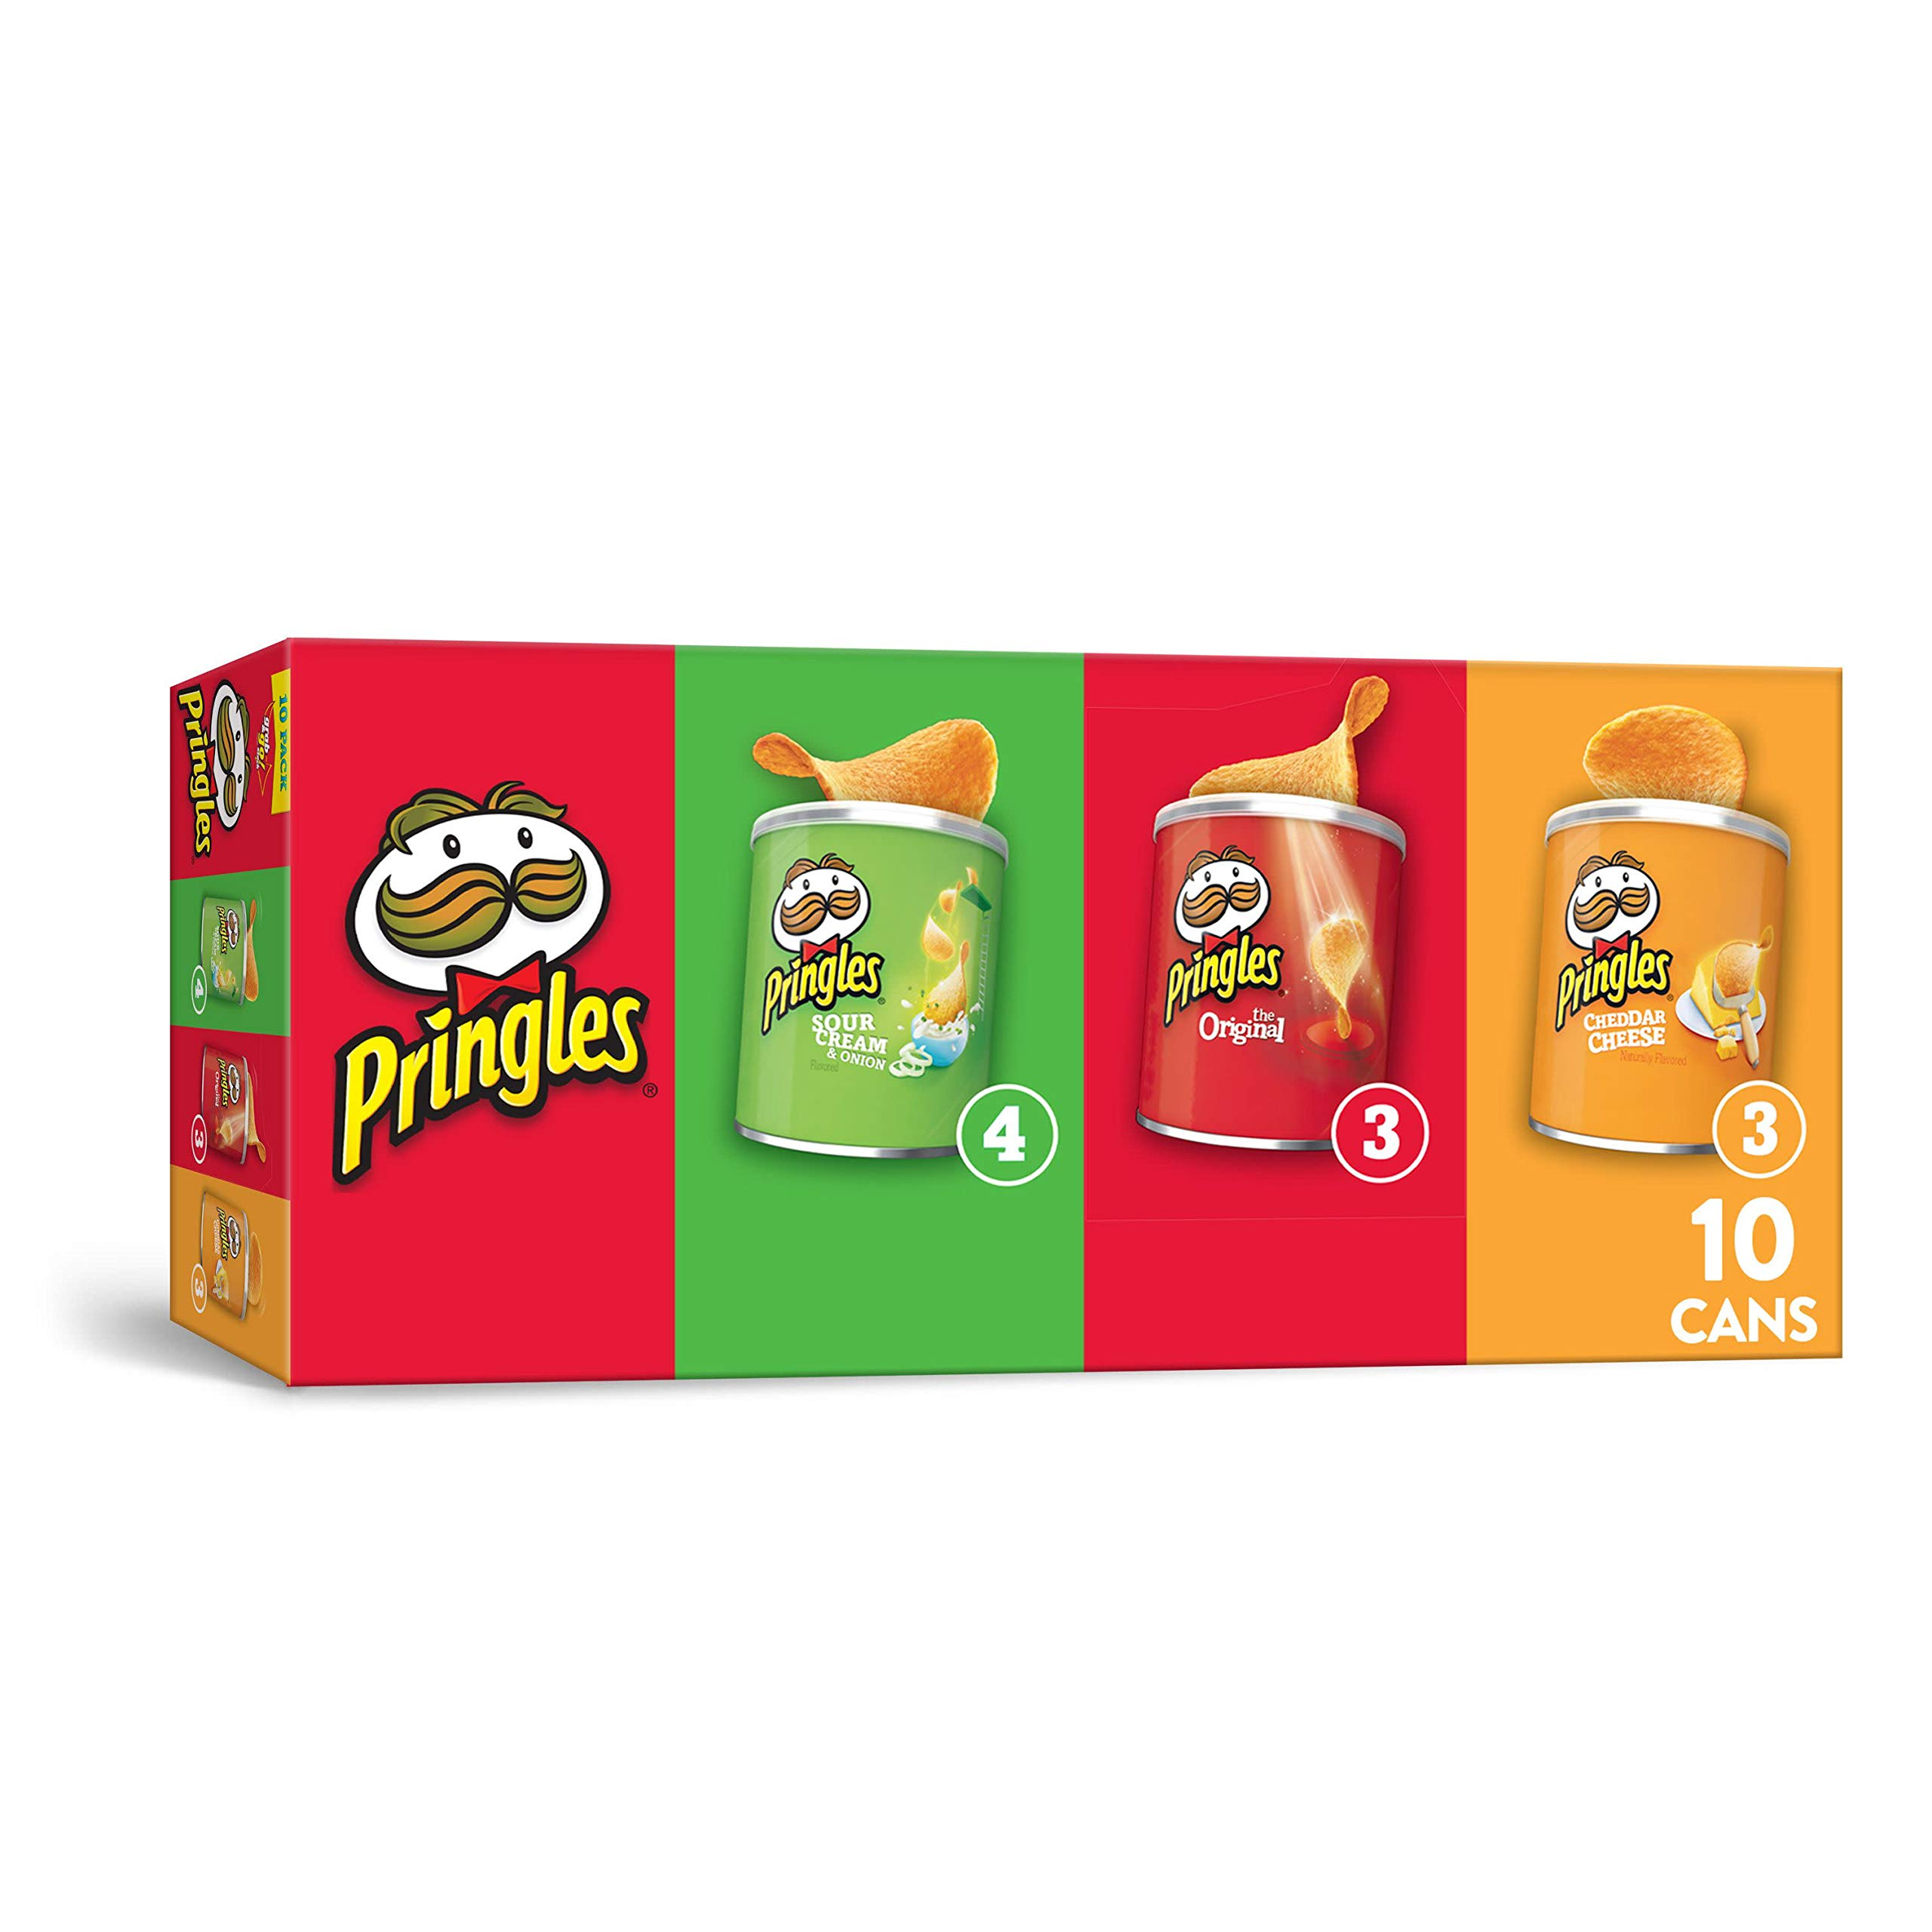 Pringles Potato Crisps Chips, Flavored Variety Pack, Original, Cheddar Cheese, Sour Cream and Onion, Grab and Go, 13.7 oz (10 Cans)